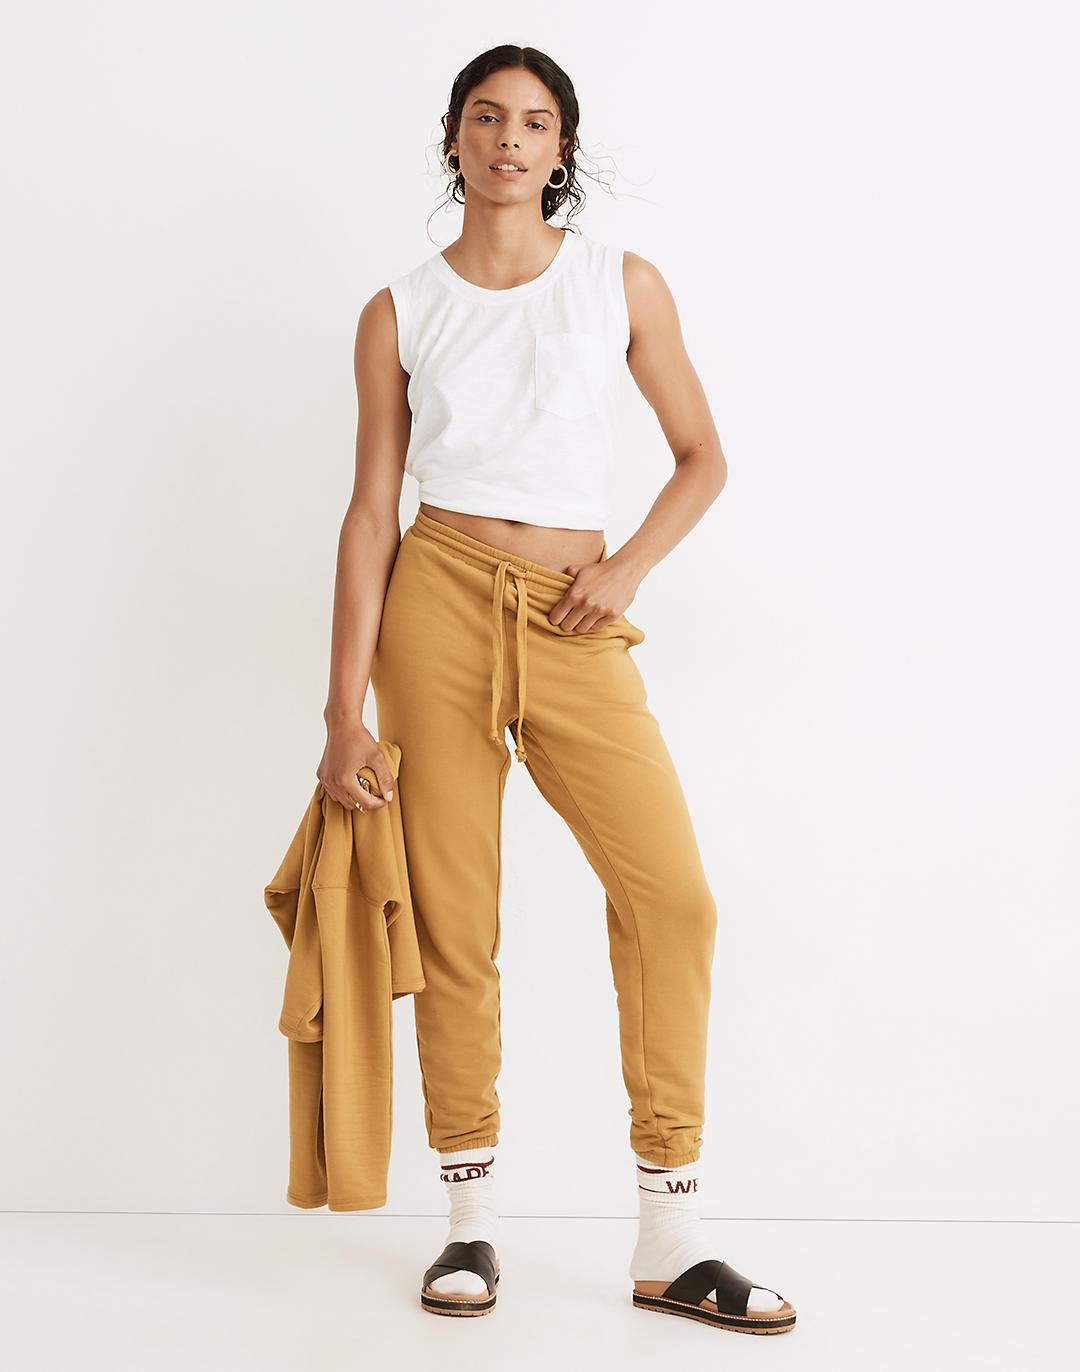 Petite MWL Superbrushed Easygoing Sweatpants